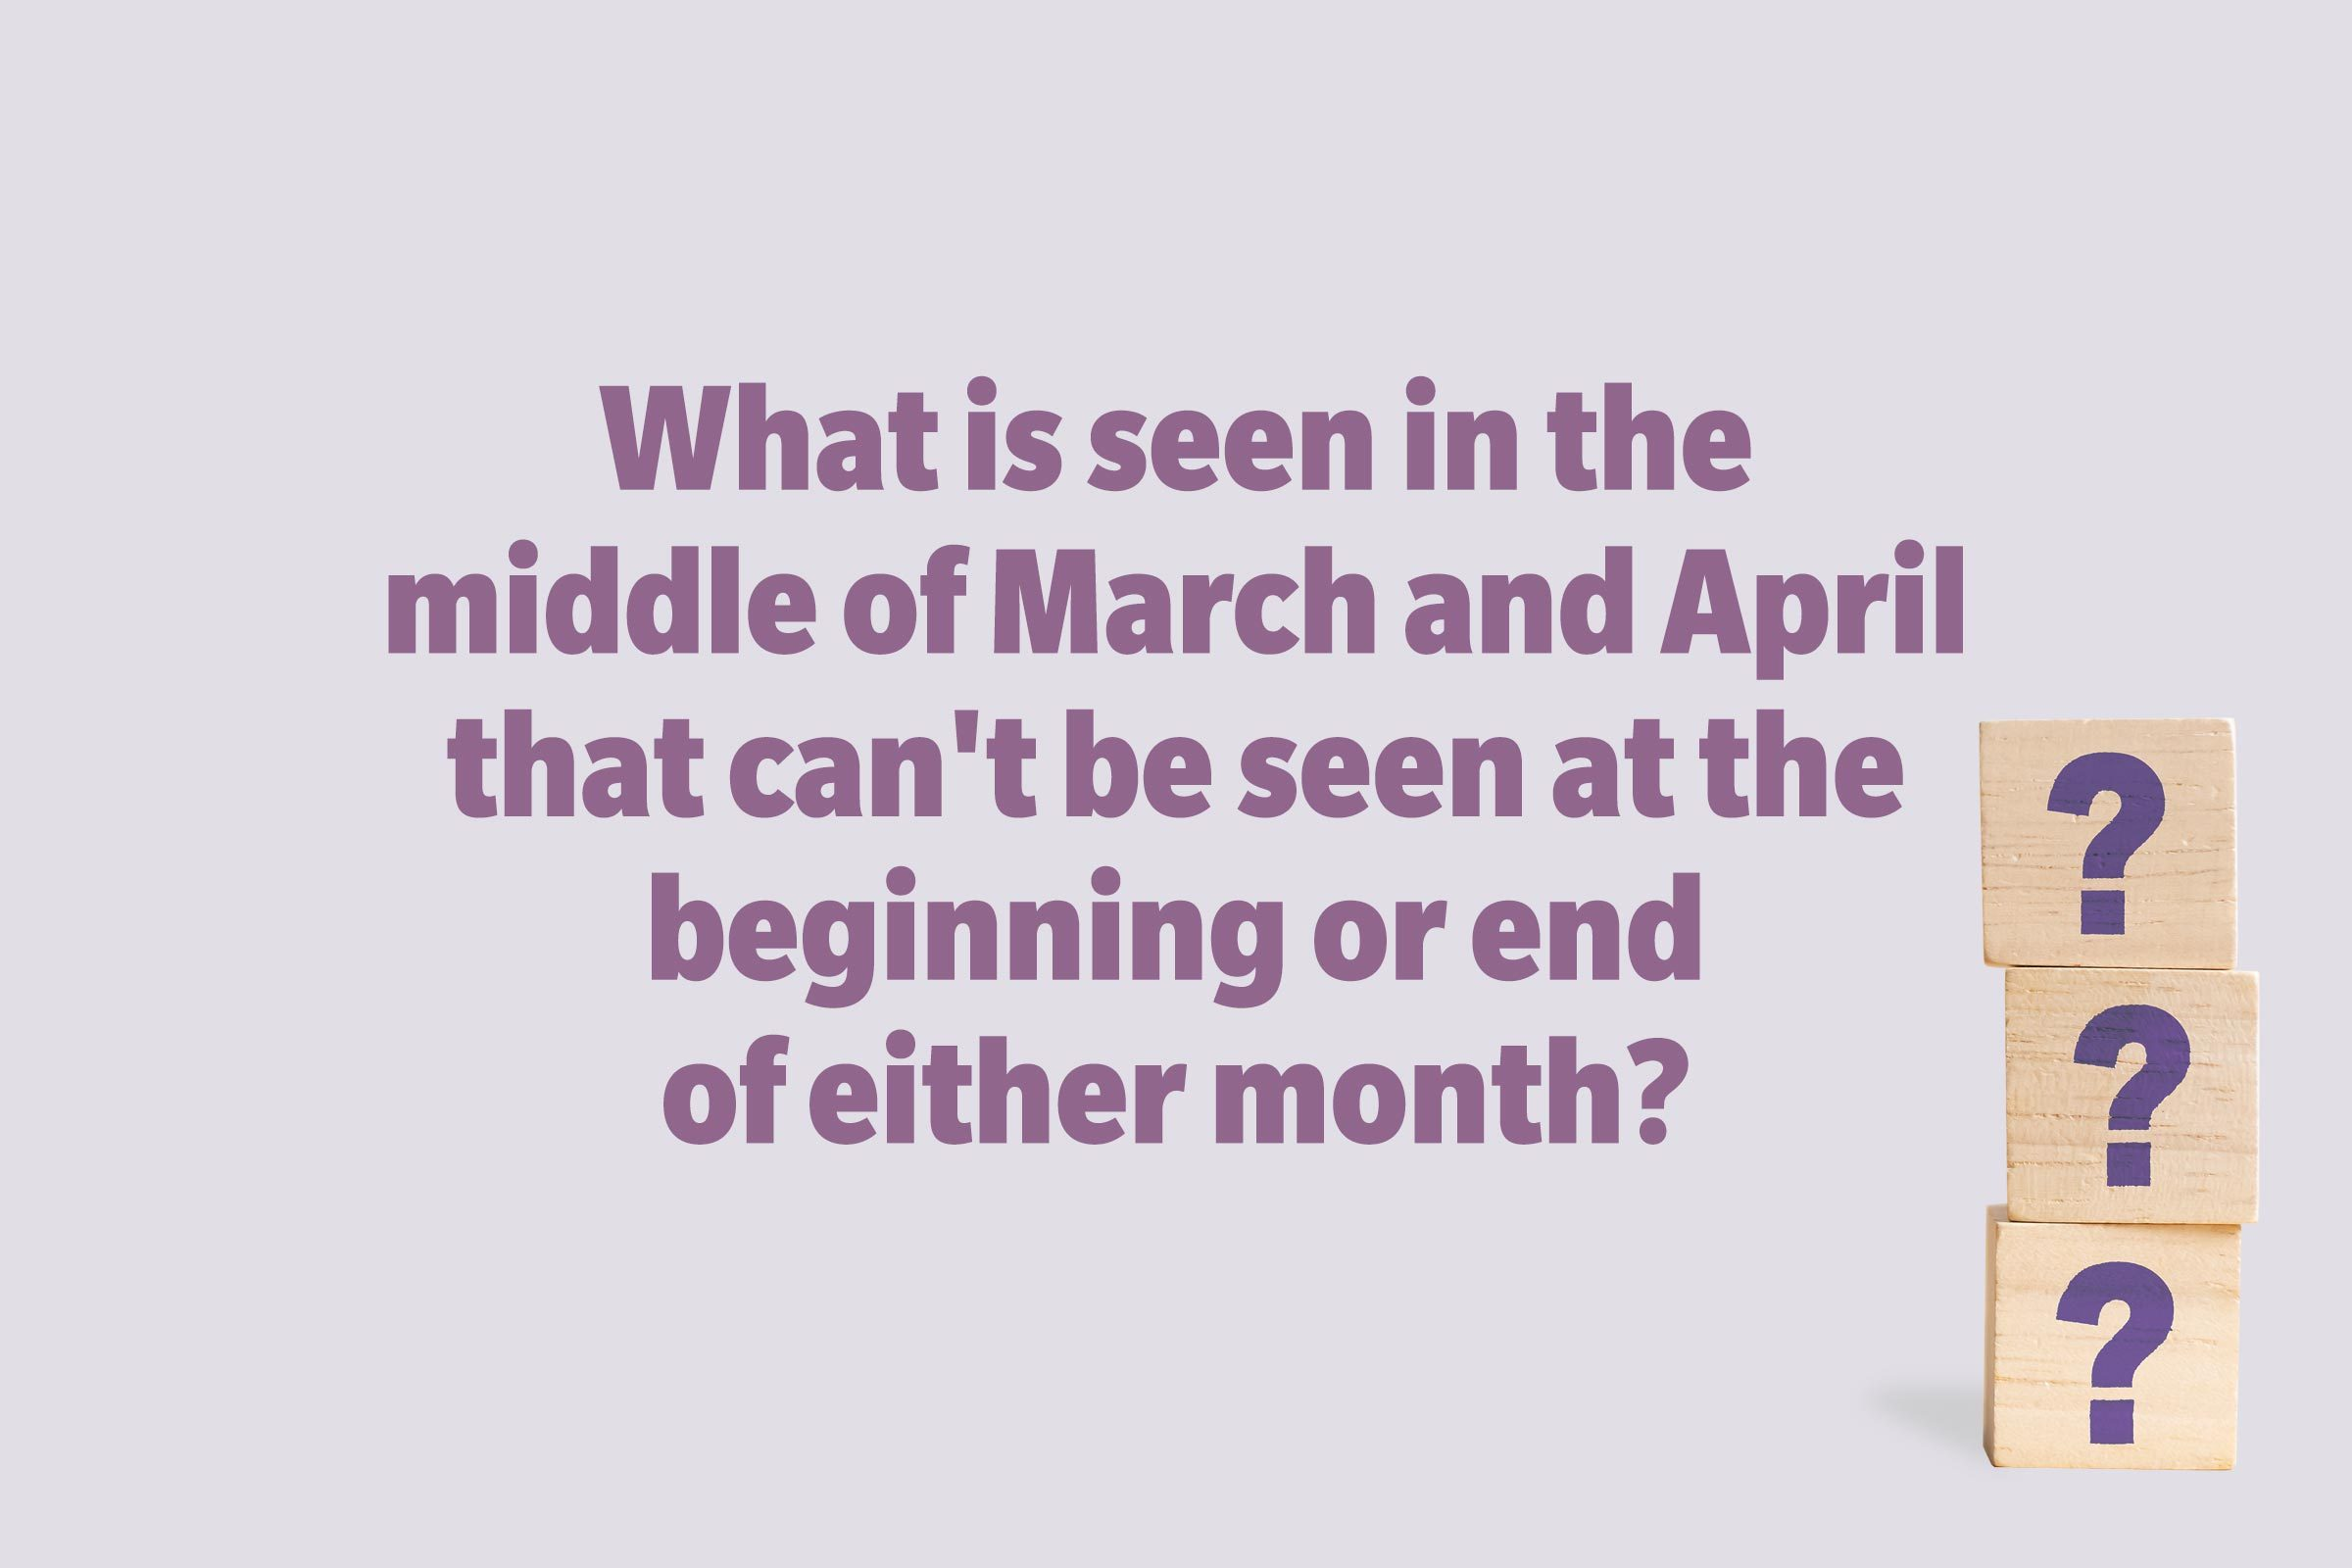 What is seen in the middle of March and April that can't be seen at the beginning or end of either month?